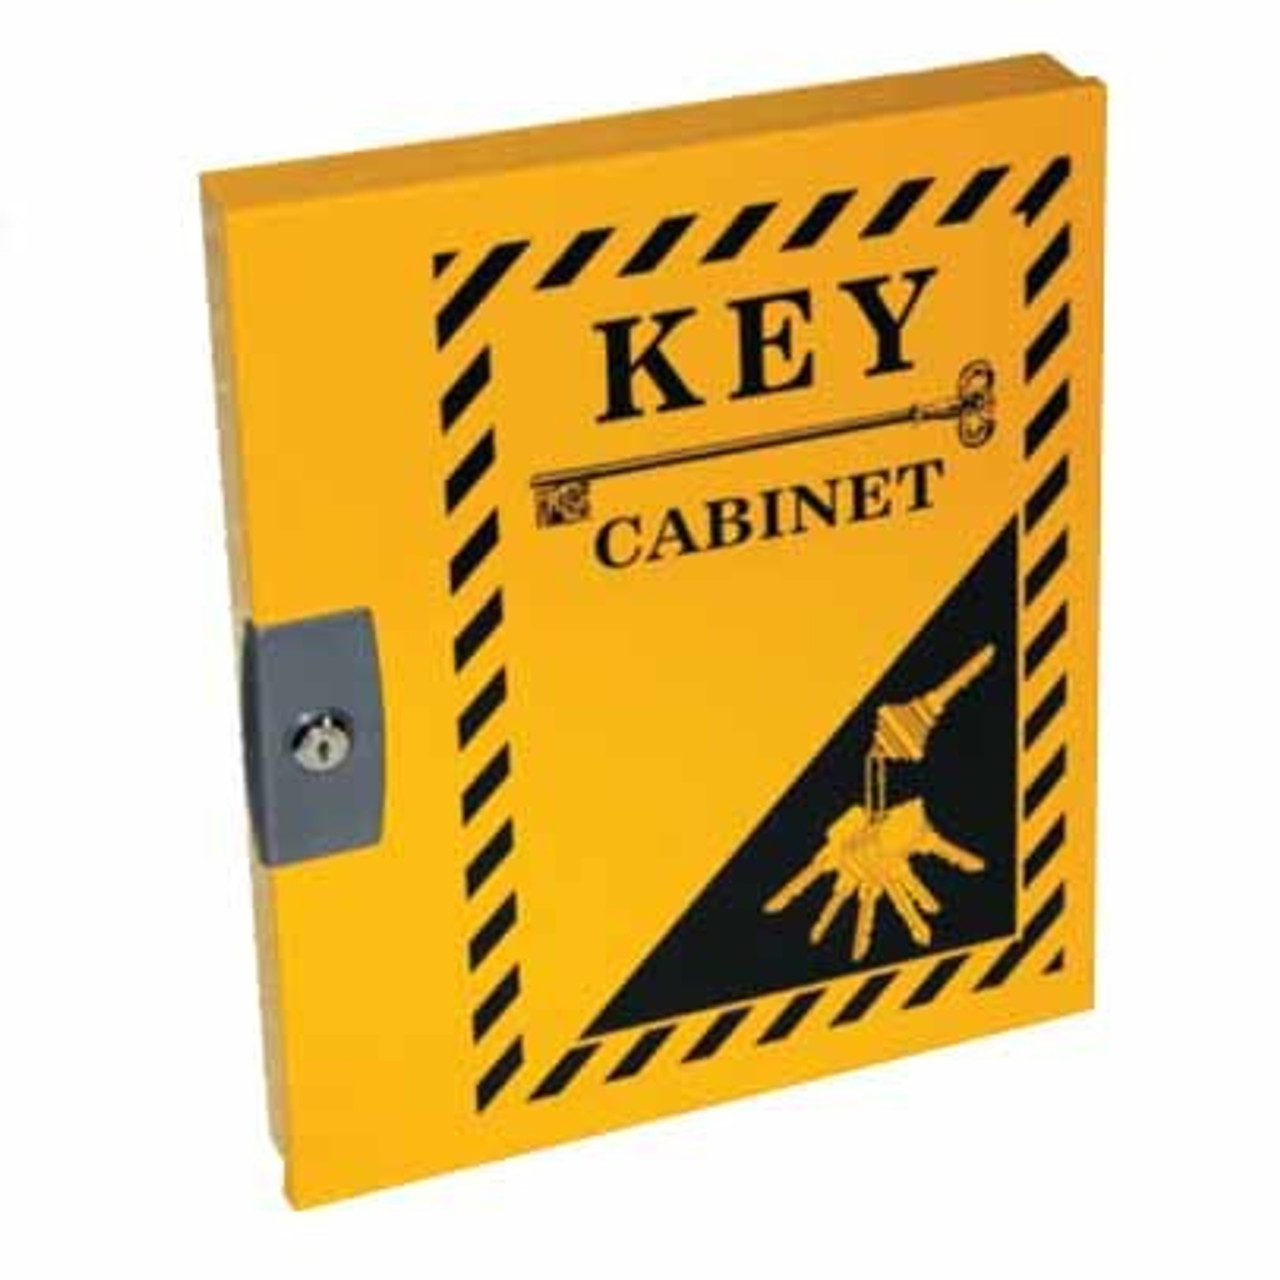 Key Cabinet PS-LOTO-KC60